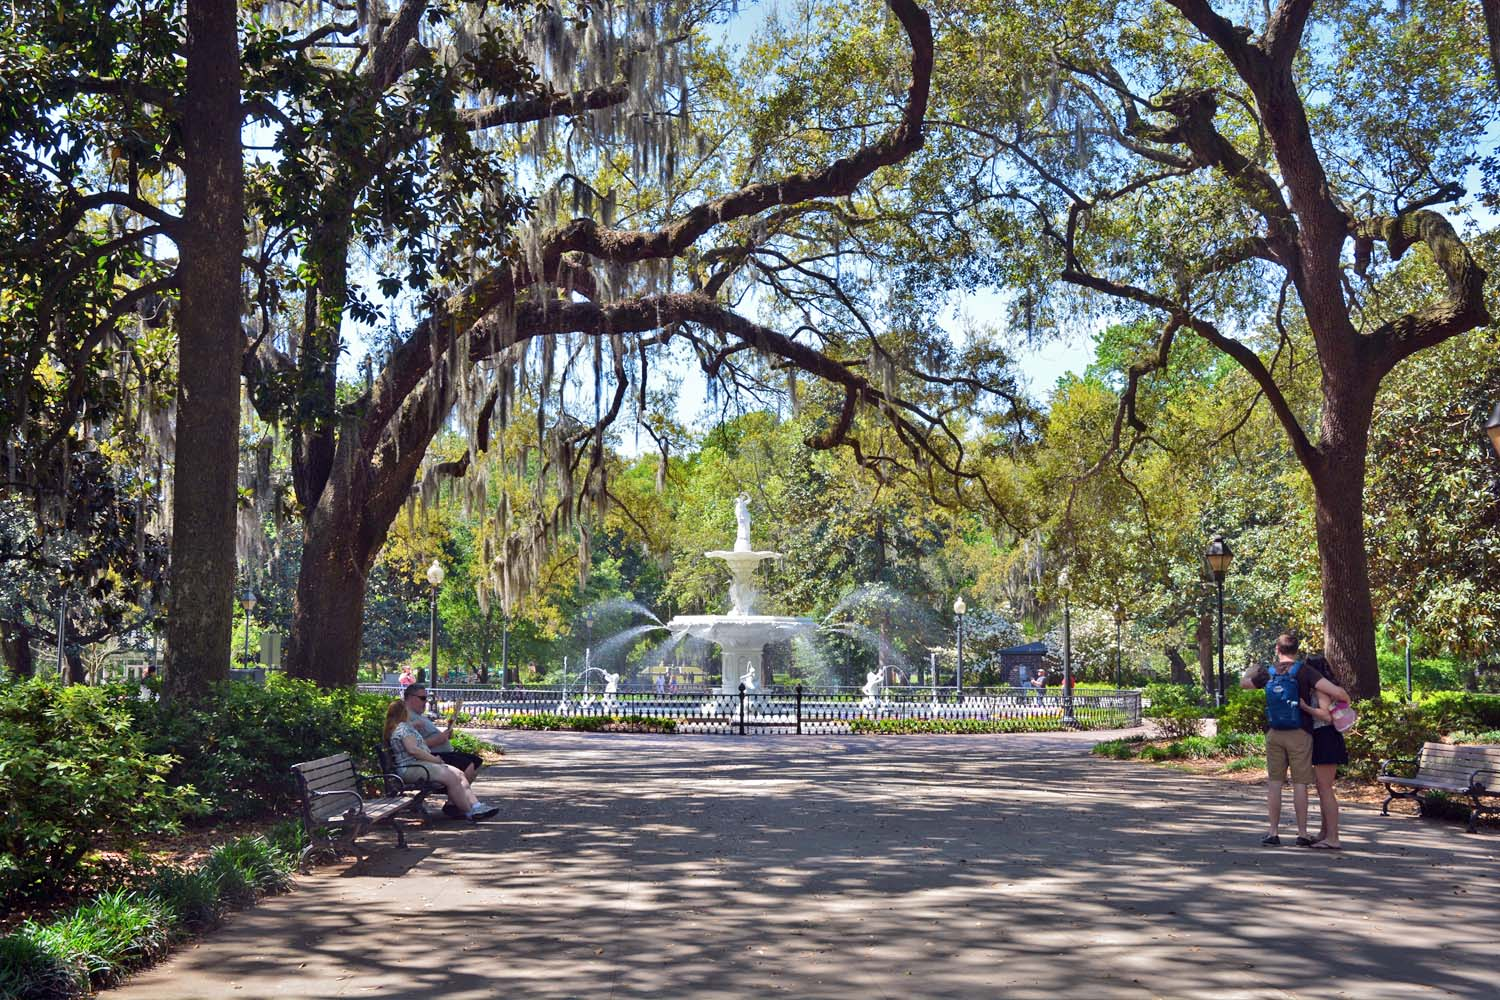 Forsyth Park, a 30 acre park in Savannah's historic district